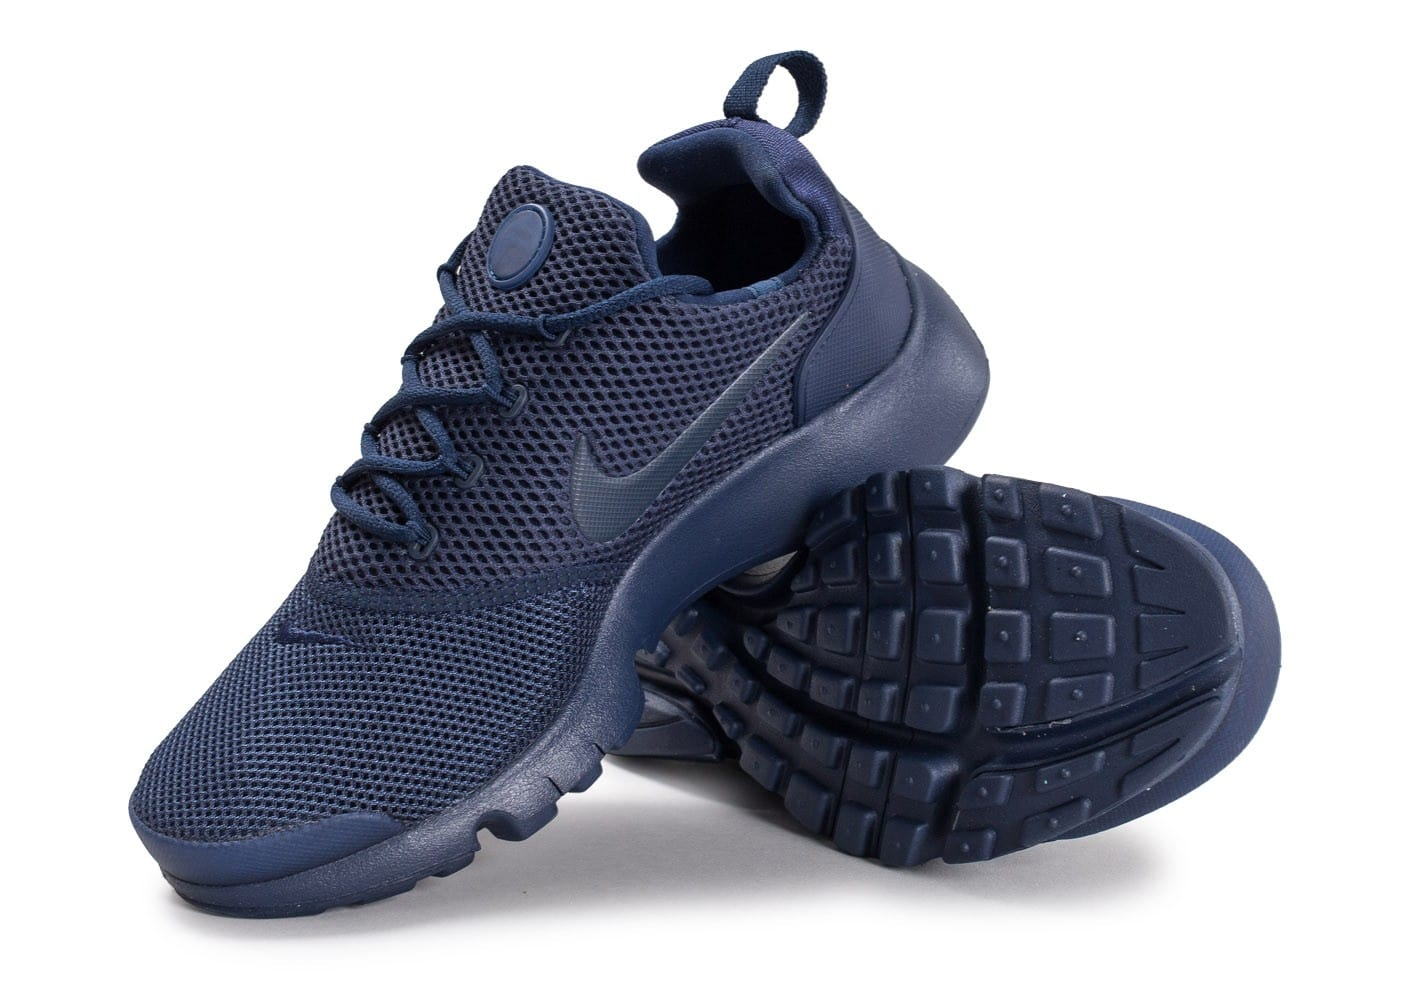 low priced df8a5 2815e ... Chaussures Nike Presto Fly Junior bleu marine vue avant ...